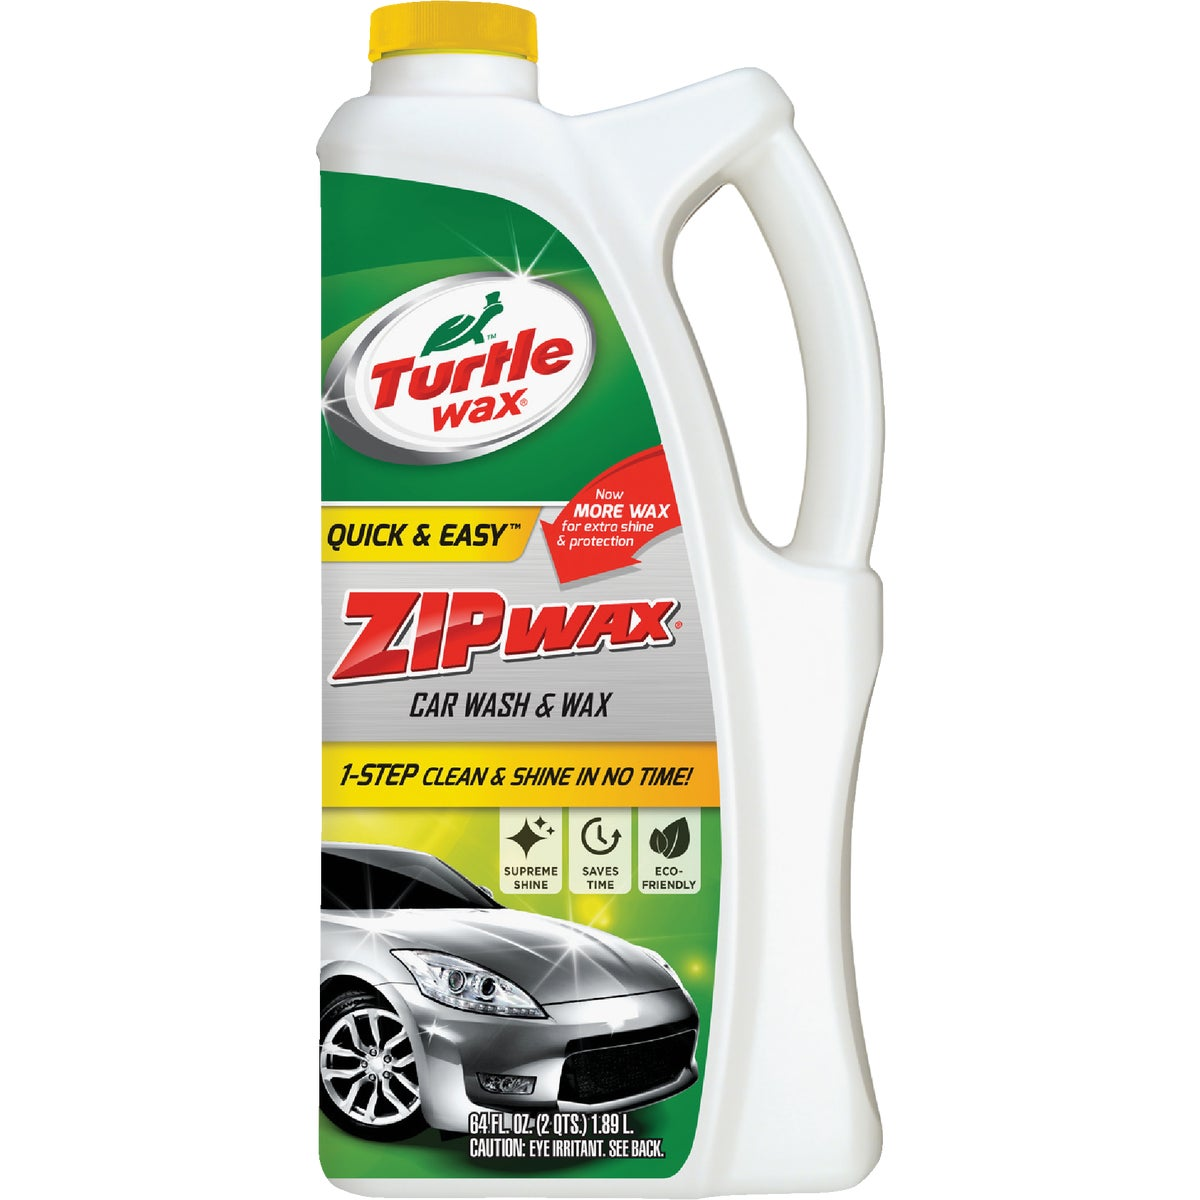 64OZ LIQUID CAR WASH - T79 by Turtle Wax Inc